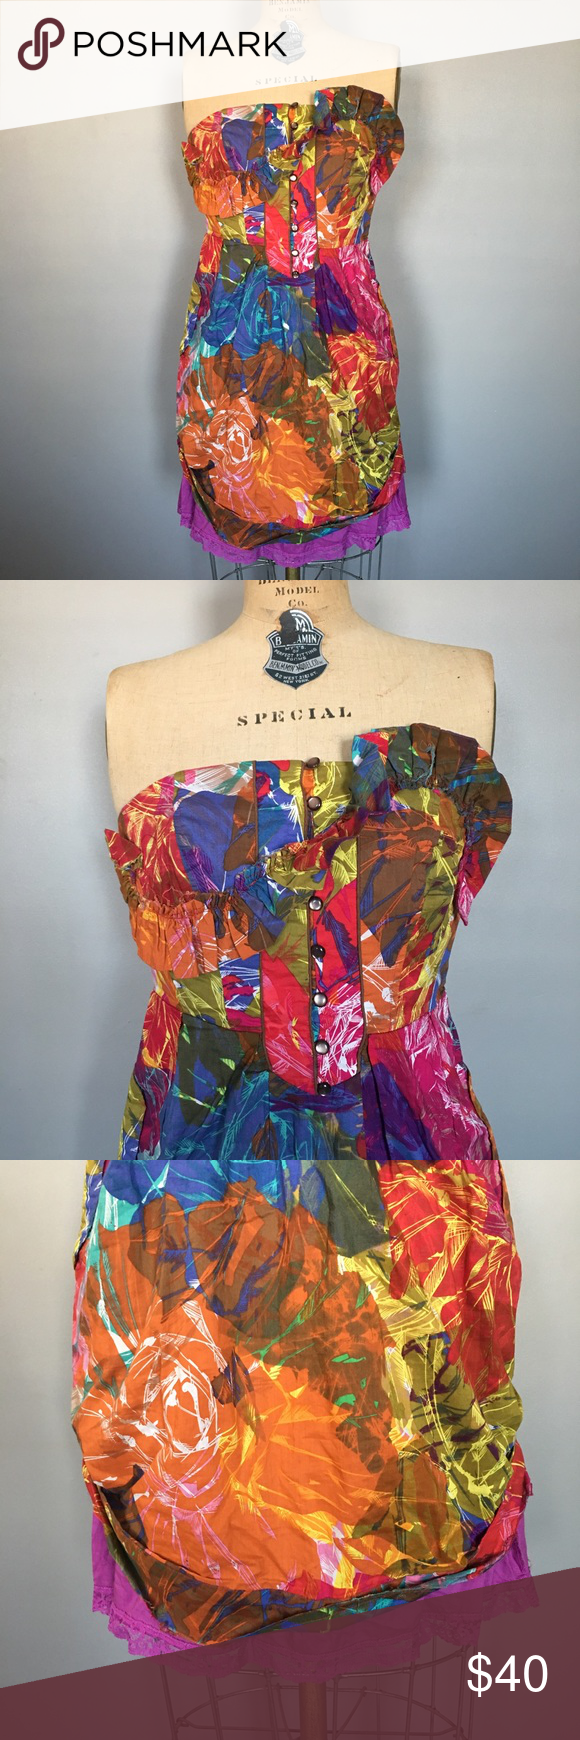 "Moulinette Soeurs Anthro Dress So beautiful! Gently worn with absolutely no signs of wear. Skirt is gathered at the sides, ruching in back. Lined with pockets. Measurements: bust 30"" waist 26"" total length 28"". Anthropologie Dresses Strapless"